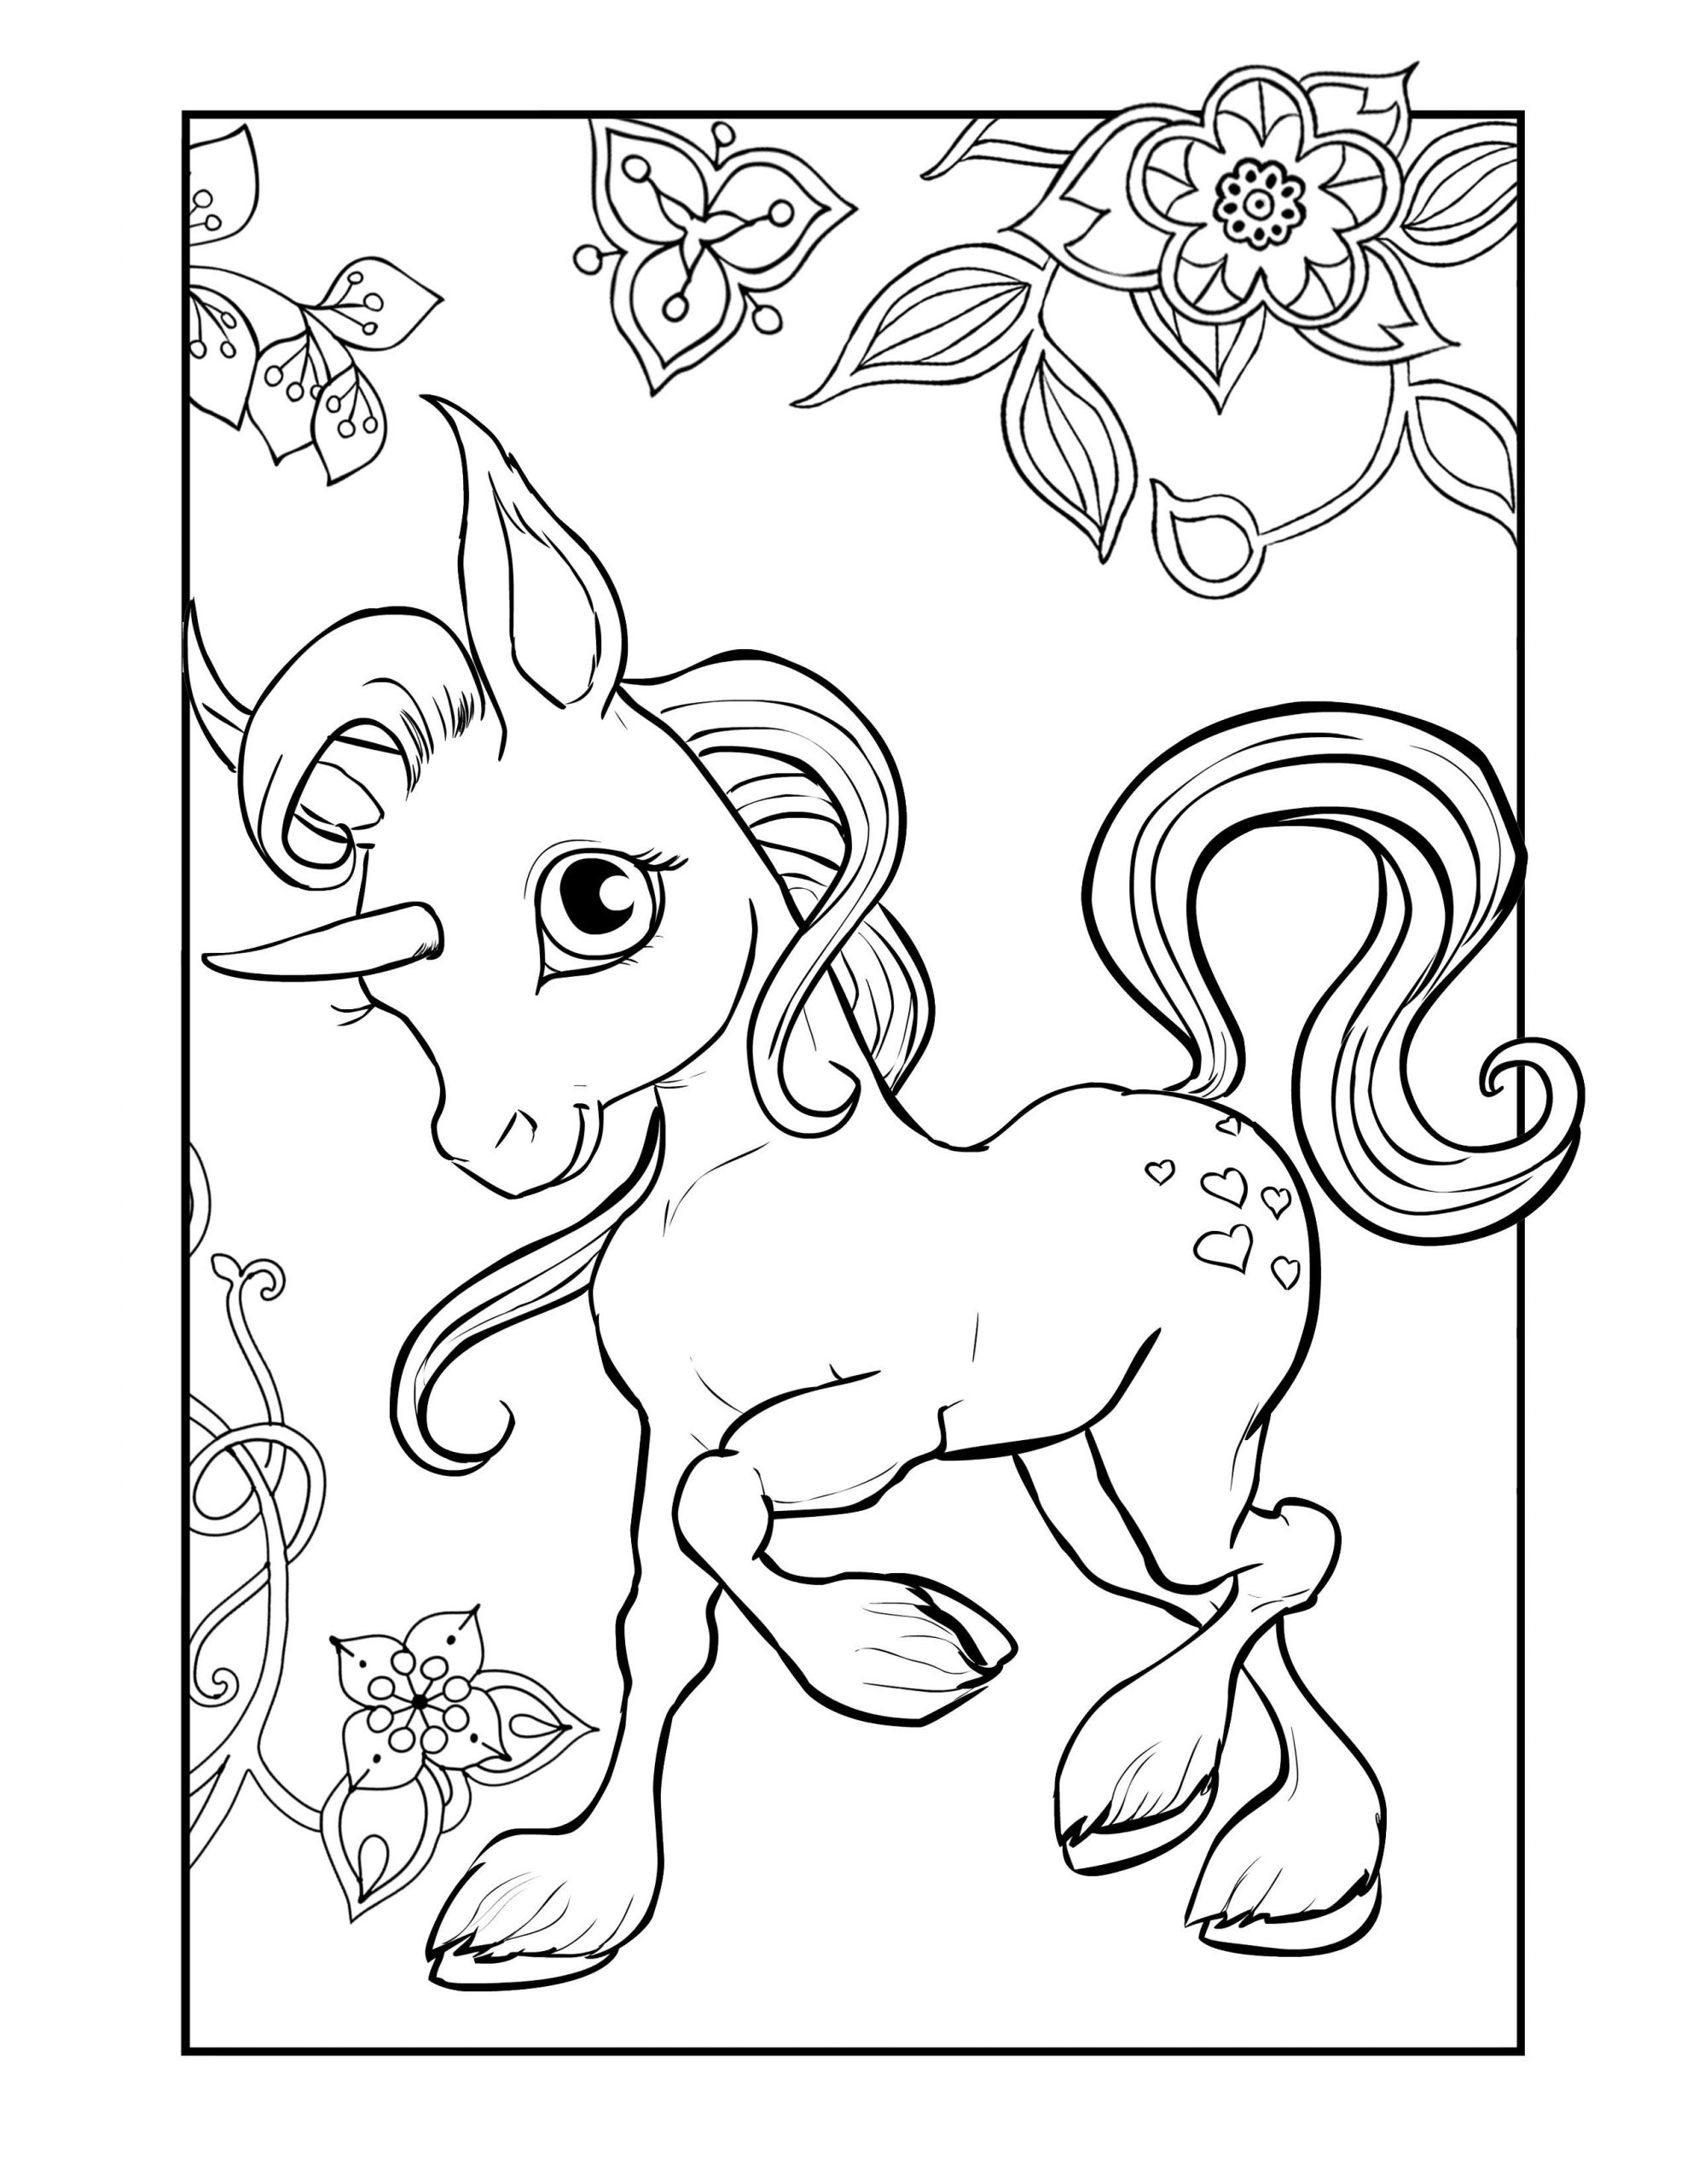 coloring pages of unicorns free unicorn coloring pages printable for kids unicorn unicorns of pages coloring